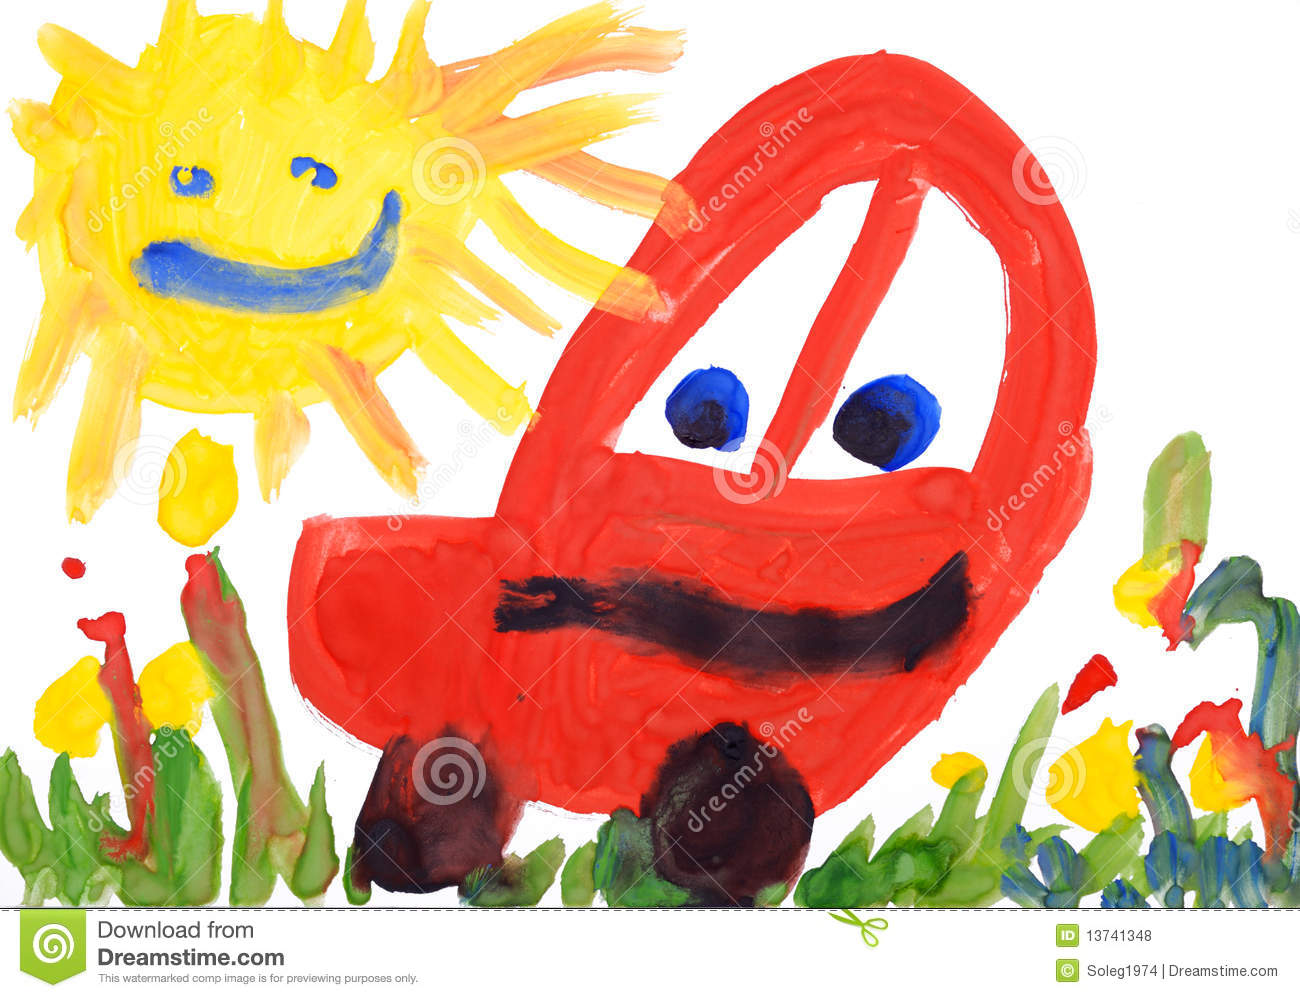 Water Based Car Paint >> Children's Drawing Watercolor. Car And Sun. Royalty Free Stock Photos - Image: 13741348